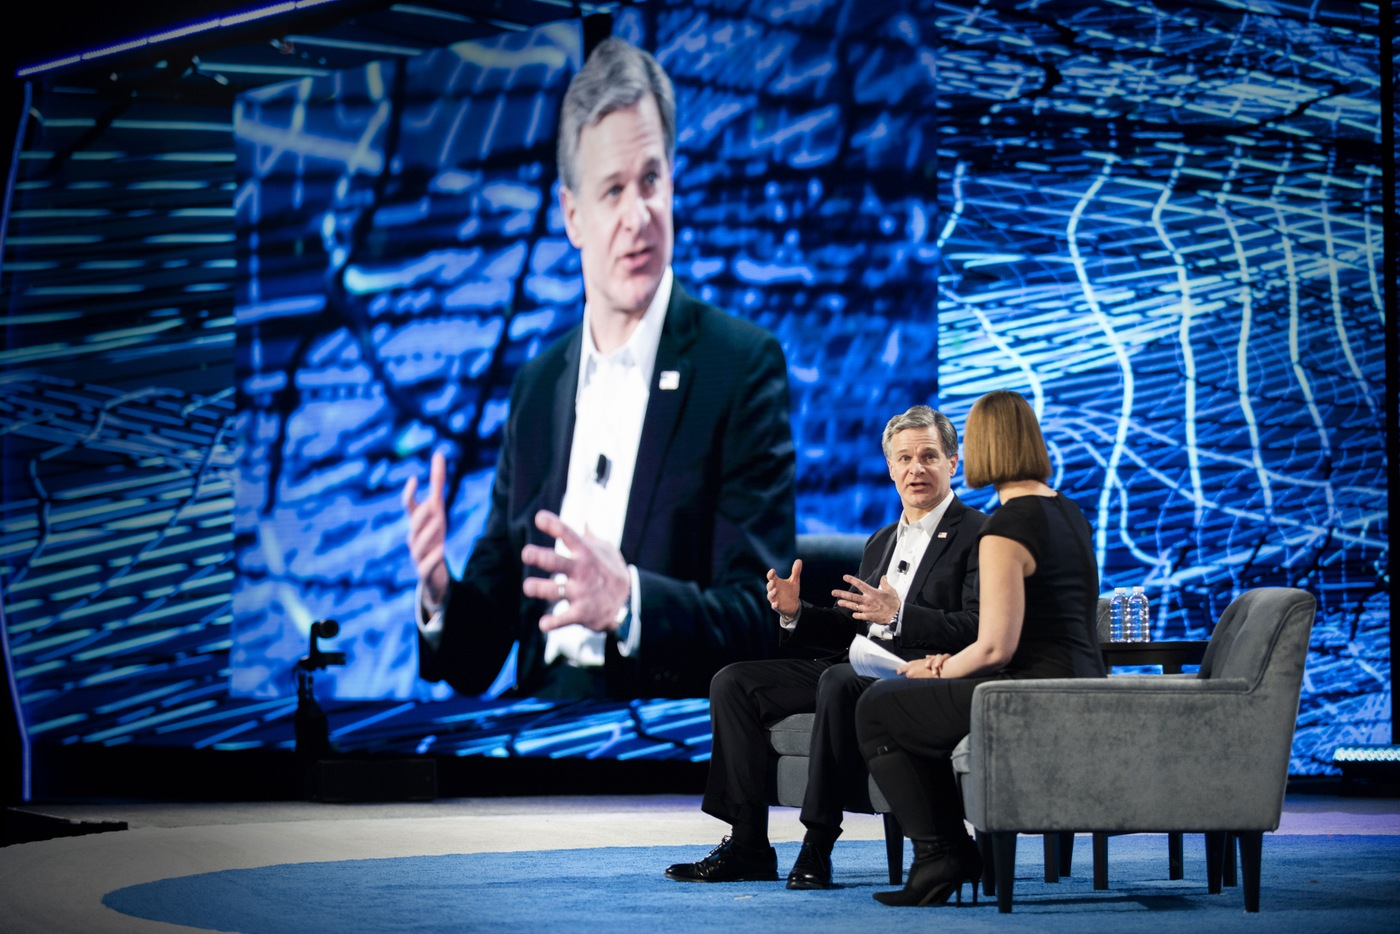 FBI Director Christopher Wray participates in a discussion with Brookings Institute security analyst Susan Hennessey during the 2019 RSA Conference on March 5, 2019, in San Francisco, California.